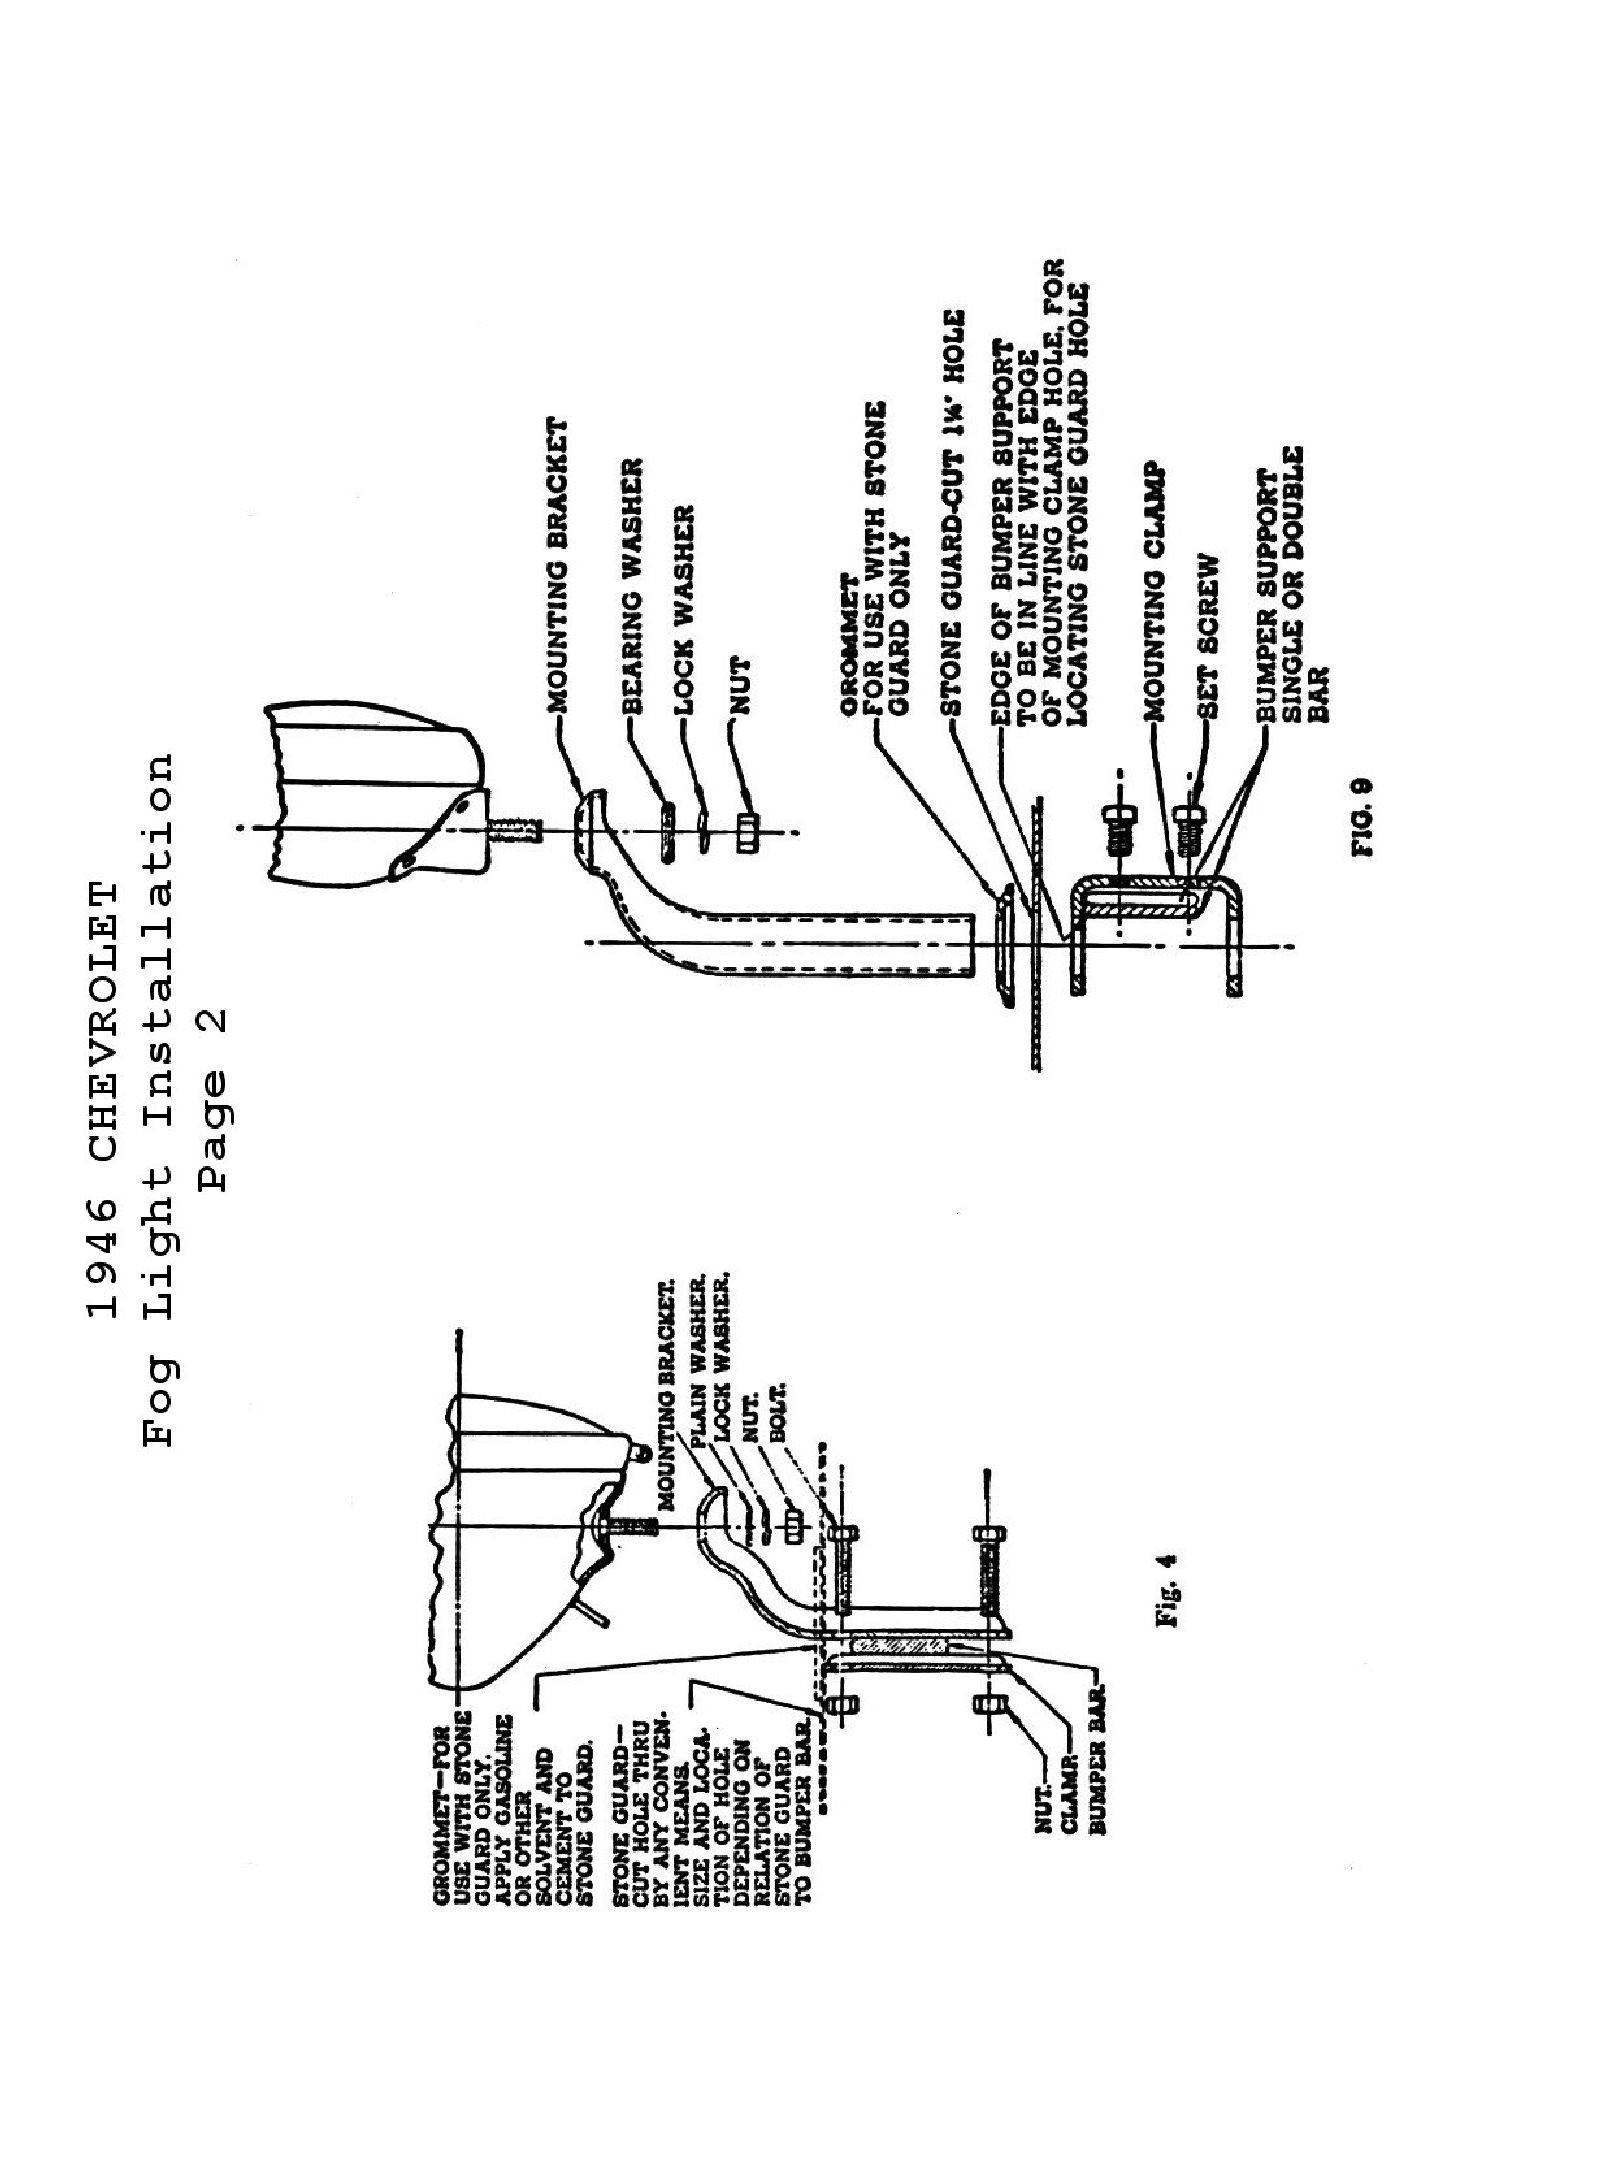 Dodge Ram Fog Light Wiring Diagram New Wiring Diagram Image